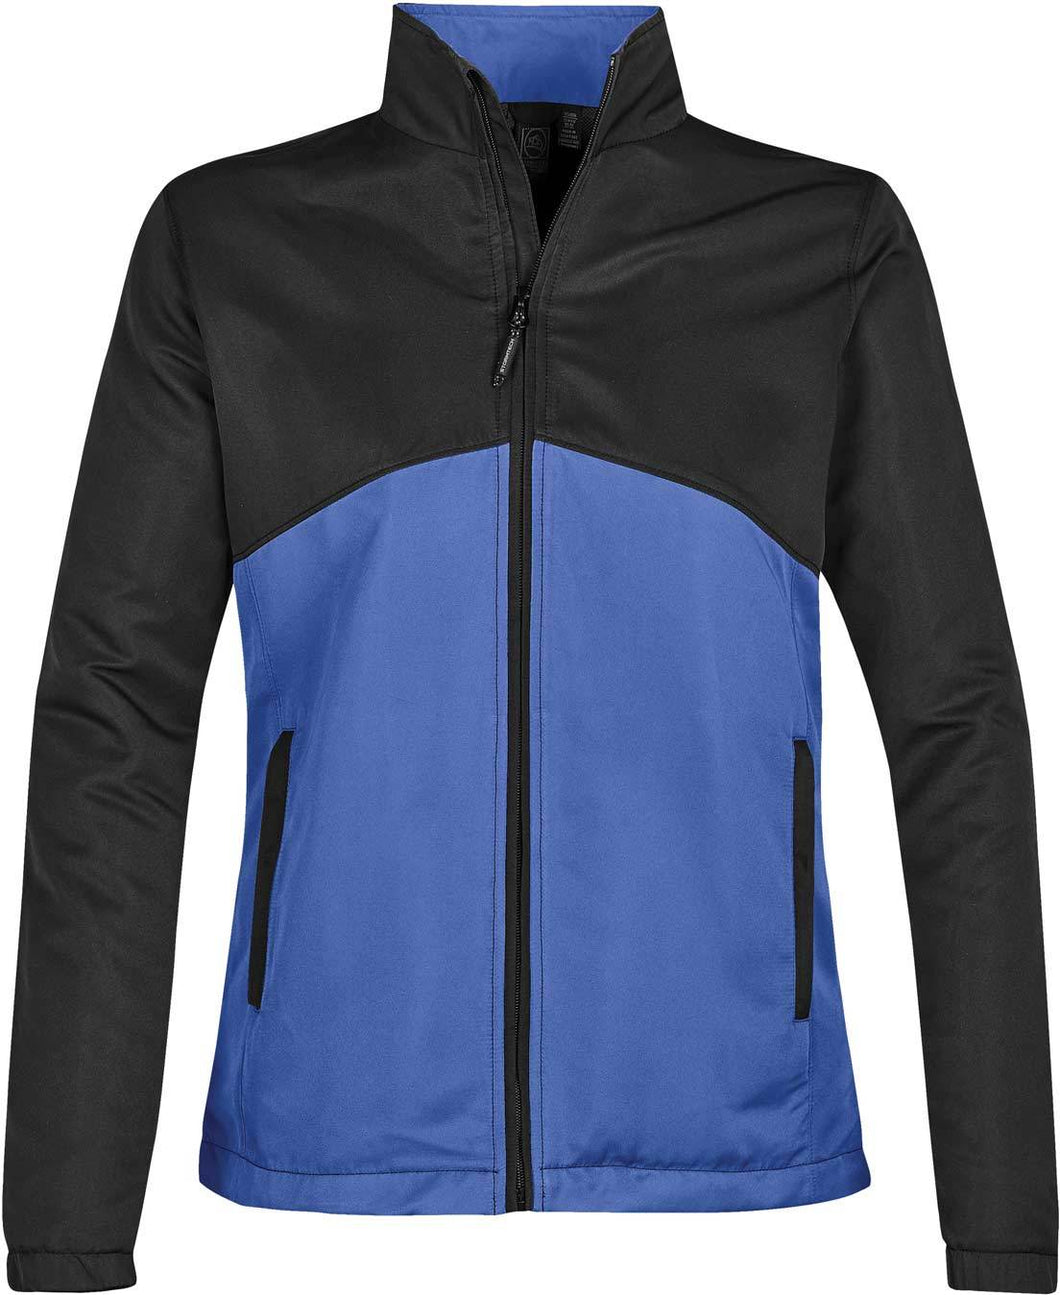 Jackets - Women's Endurance Shell - JTX-1W